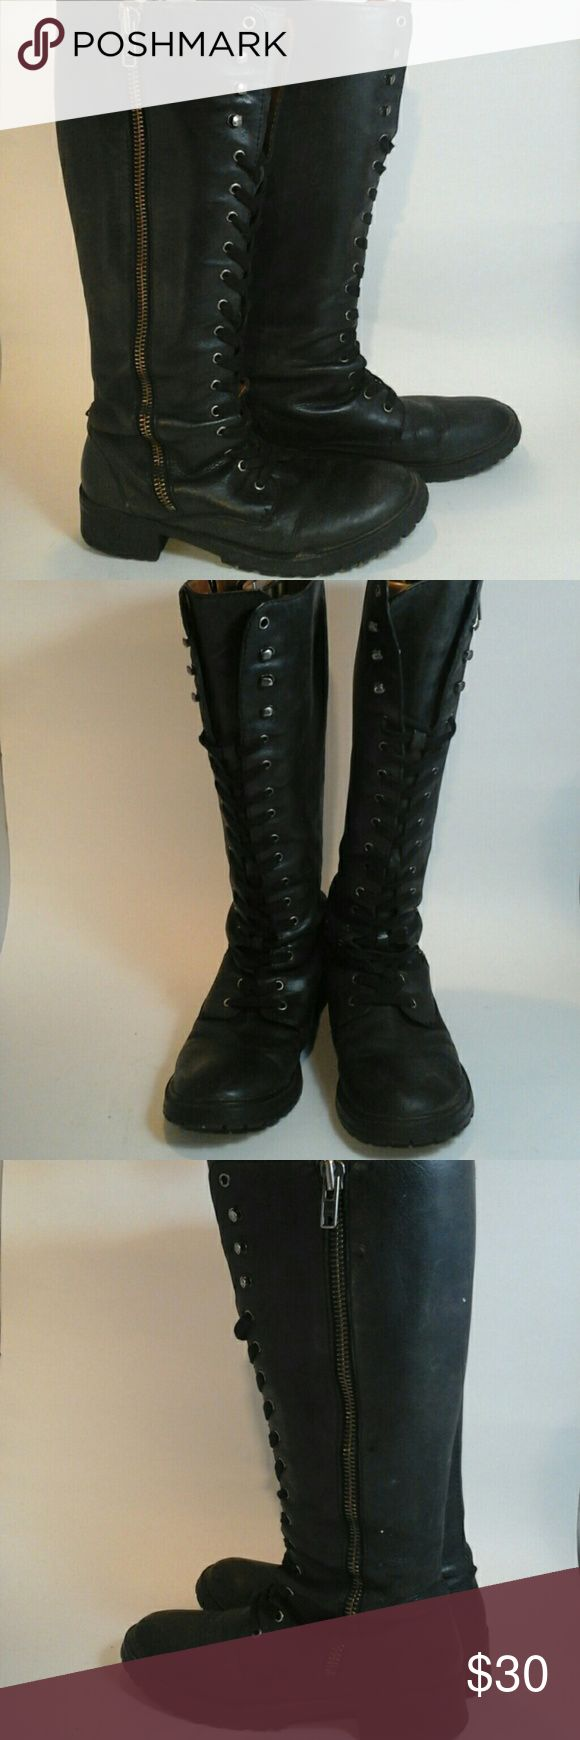 1000 ideas about s combat boots on